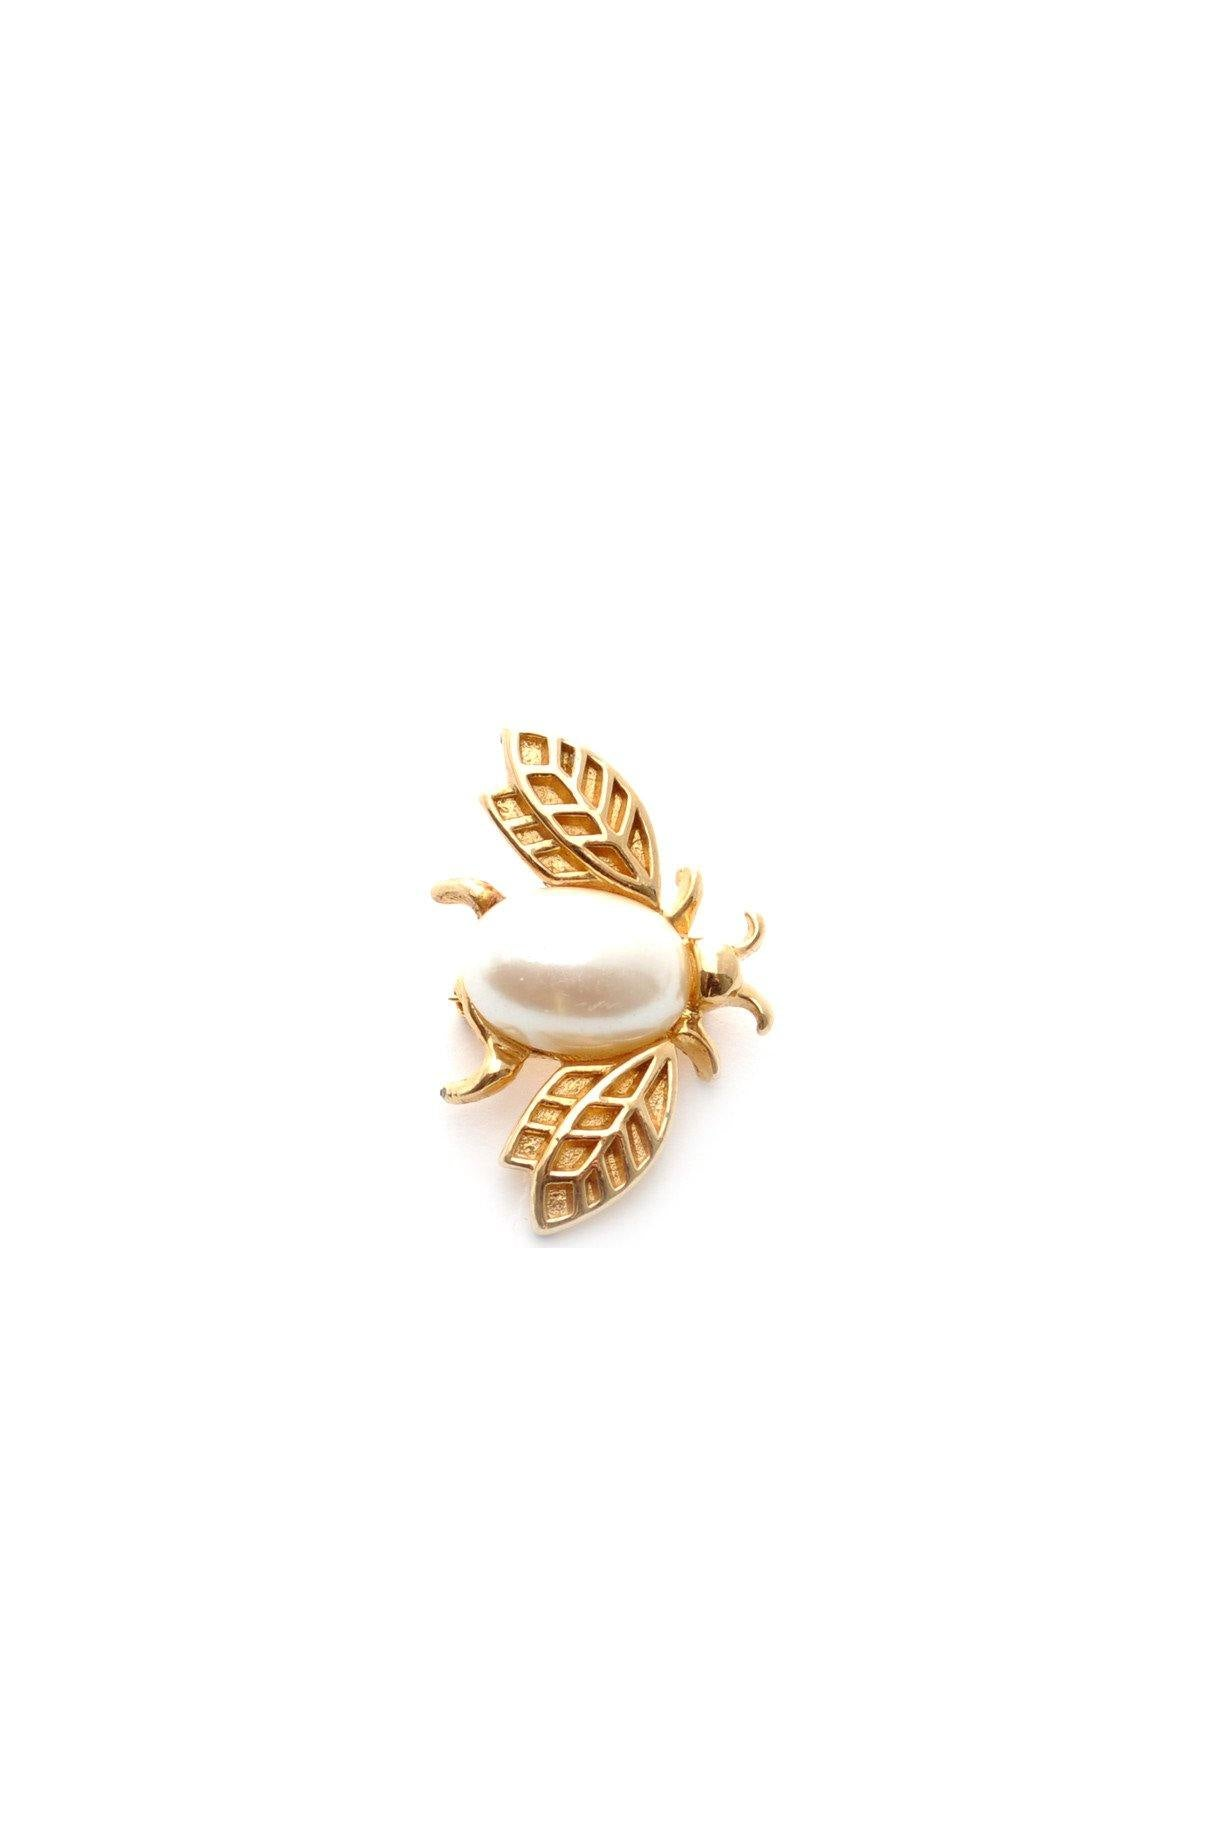 80s__Marvella__Pearl Bug Brooch